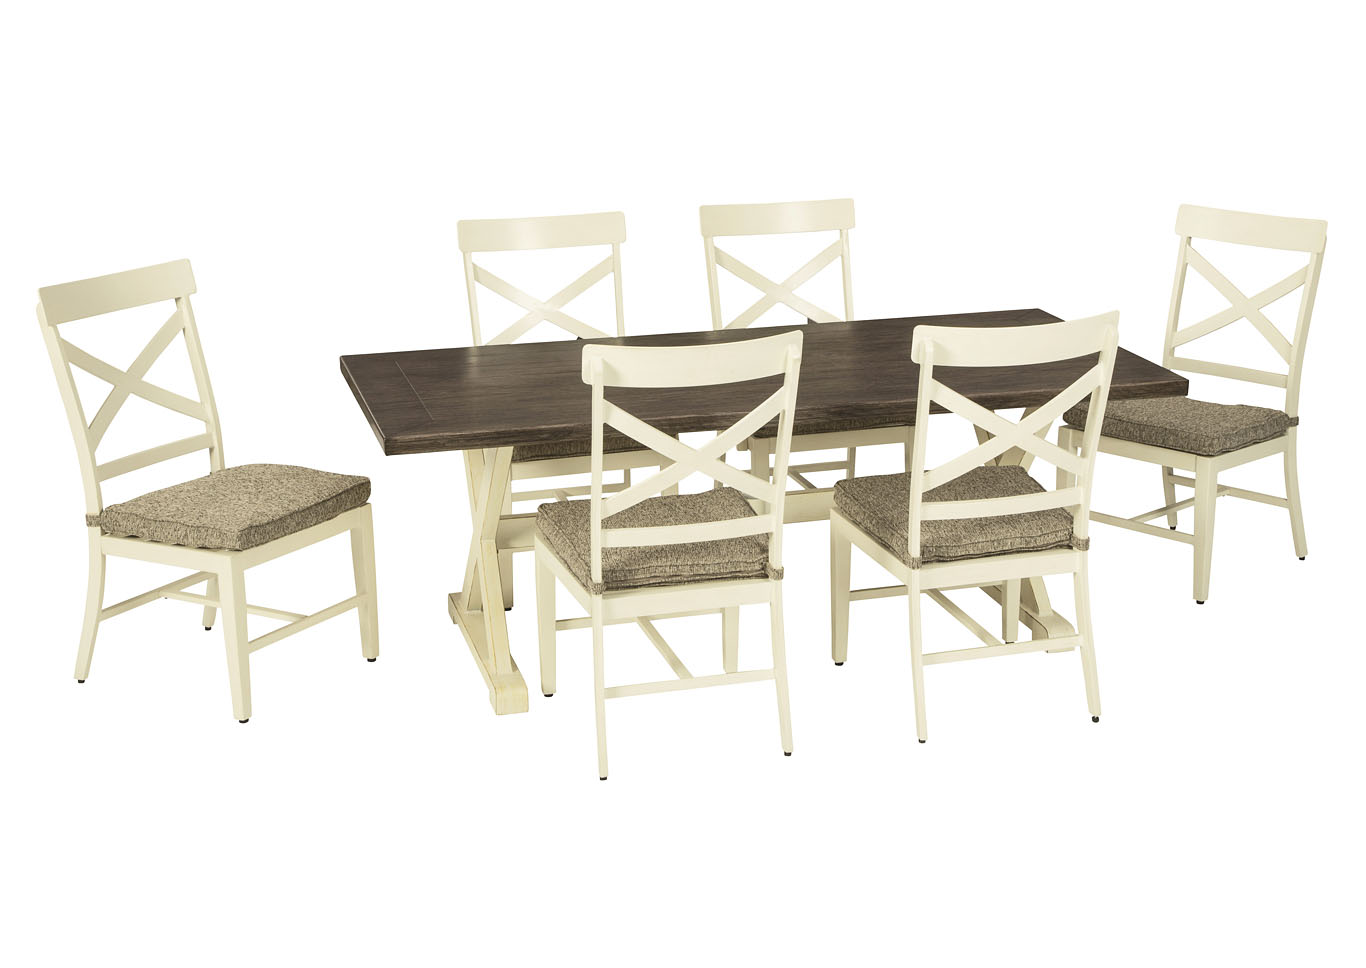 Preston Bay Antique White Dining Table w/6 Chair and Umbrella Option,Outdoor By Ashley